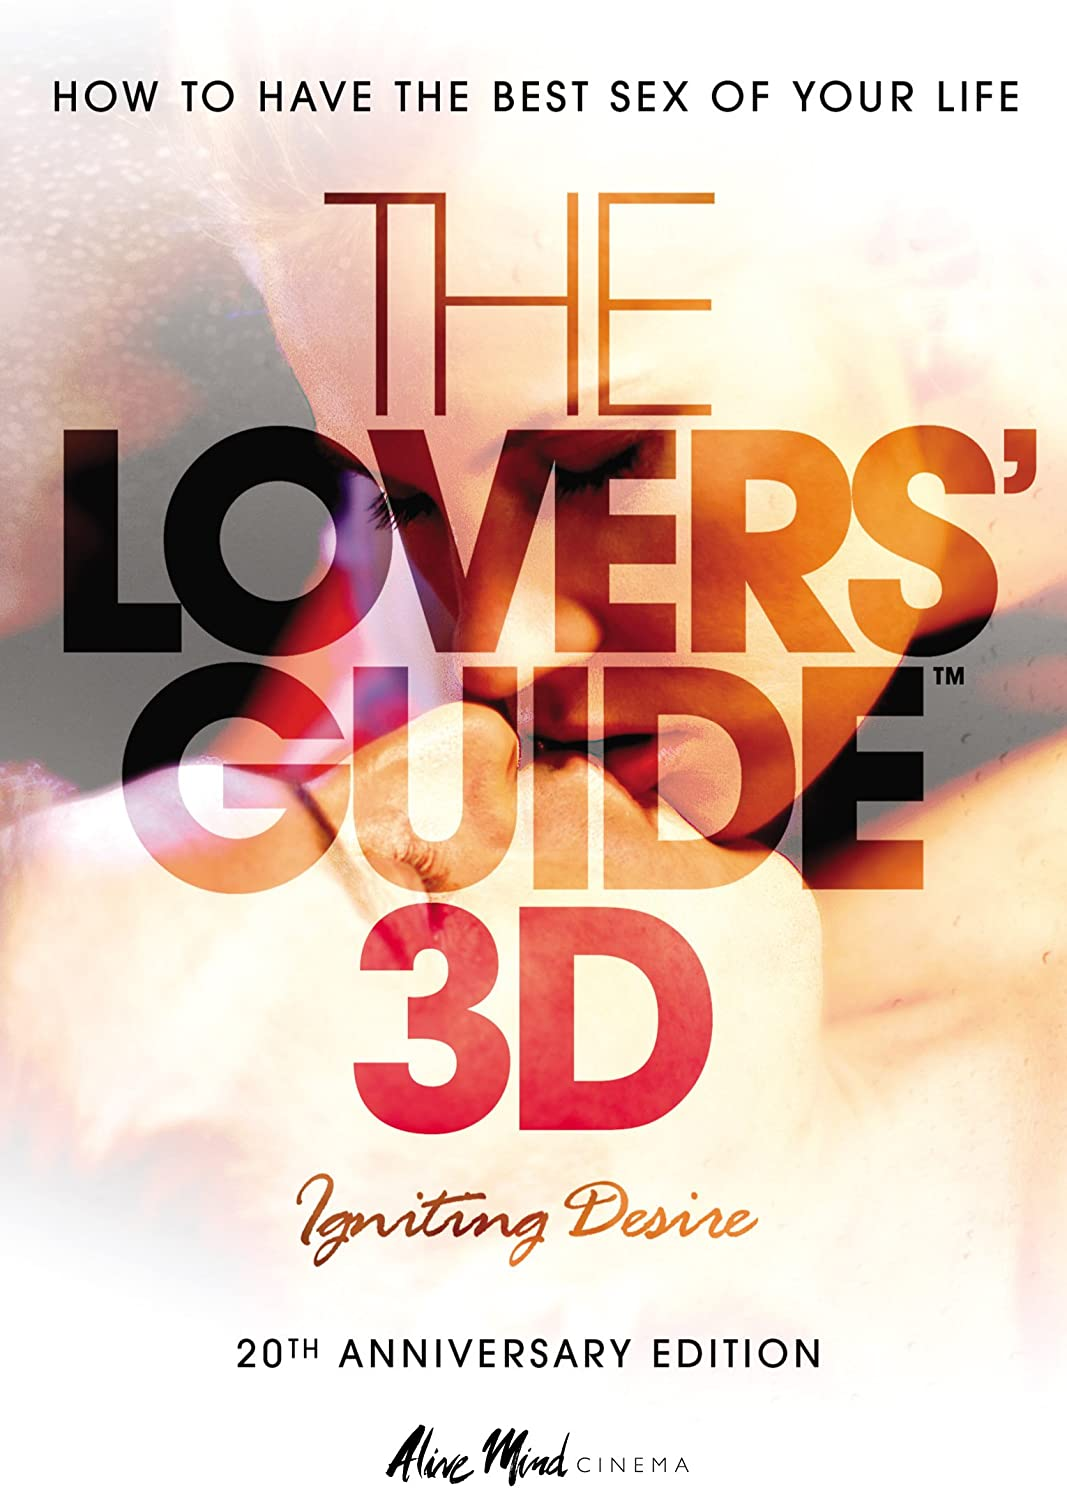 Amazon.com: The Lovers Guide in 3D: Igniting Desire: Jeremy Edwards,